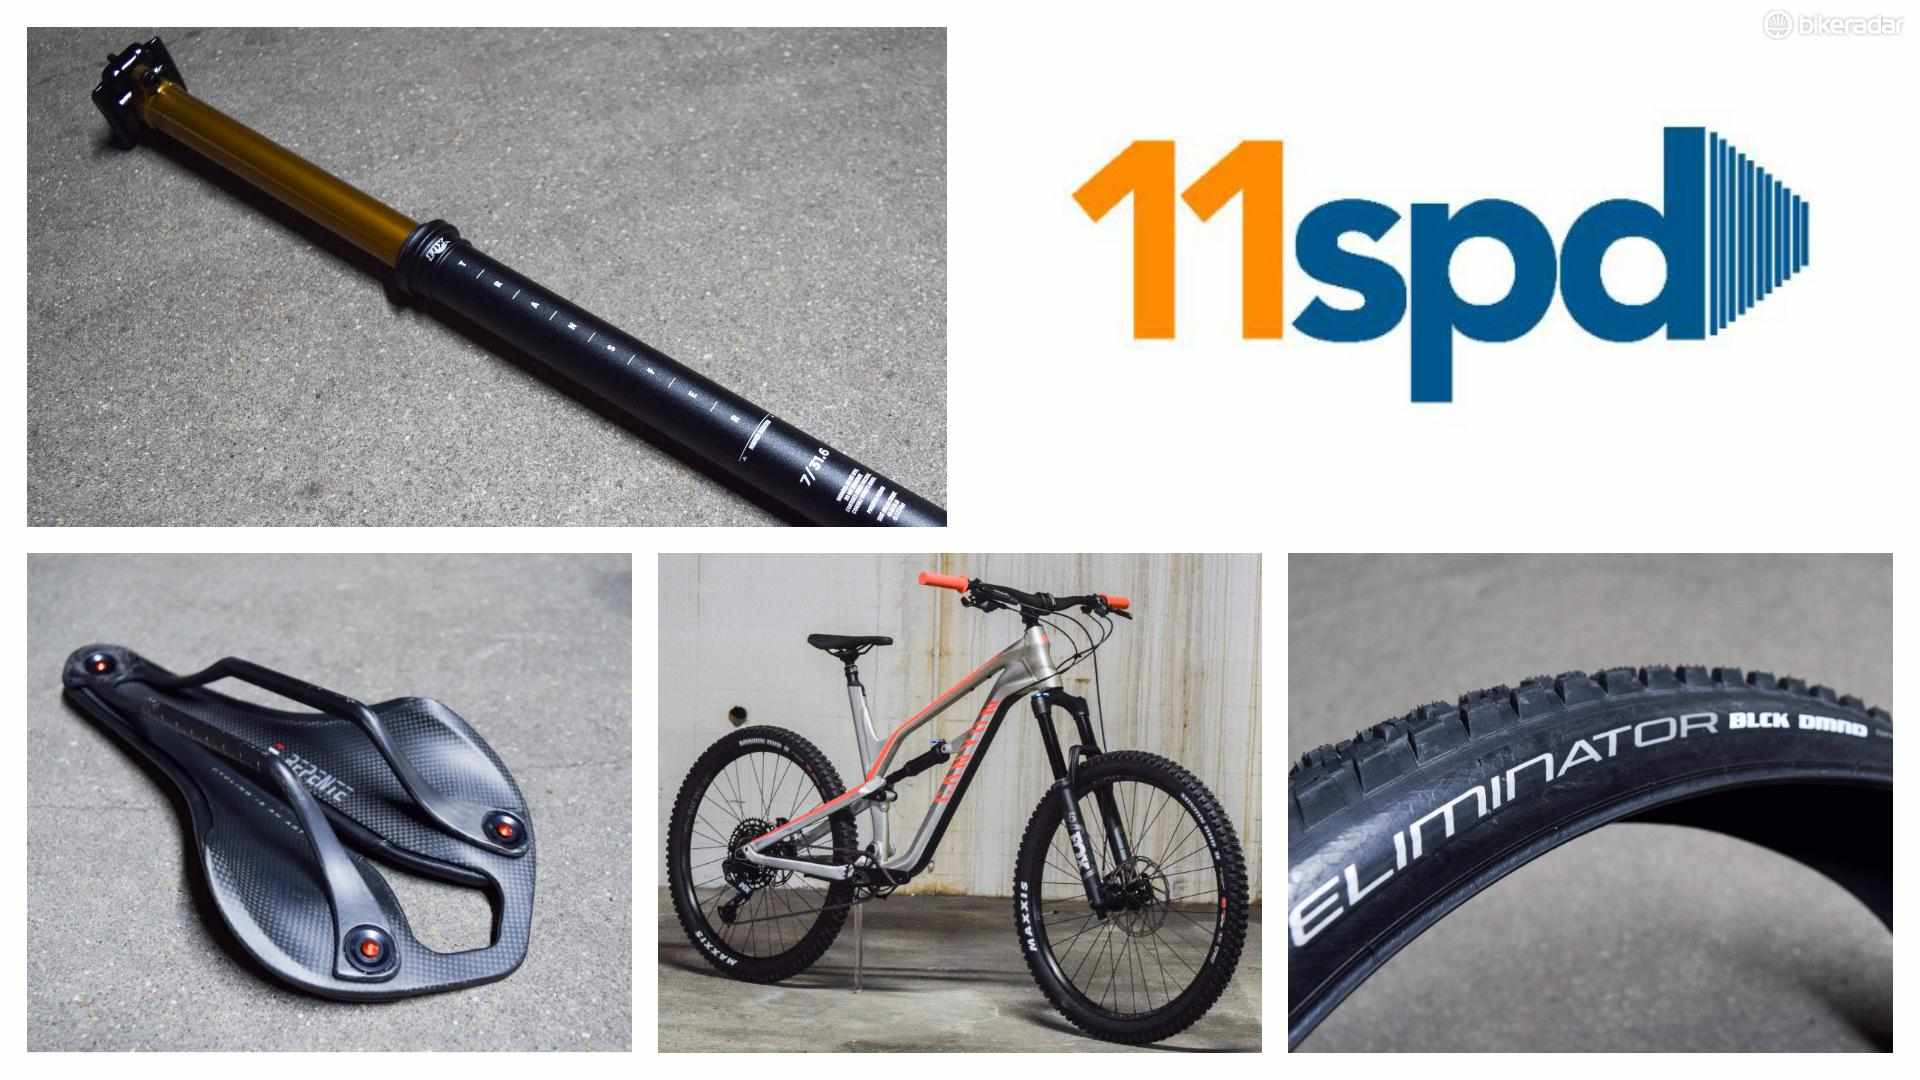 This week's 11spd is packed with top kit